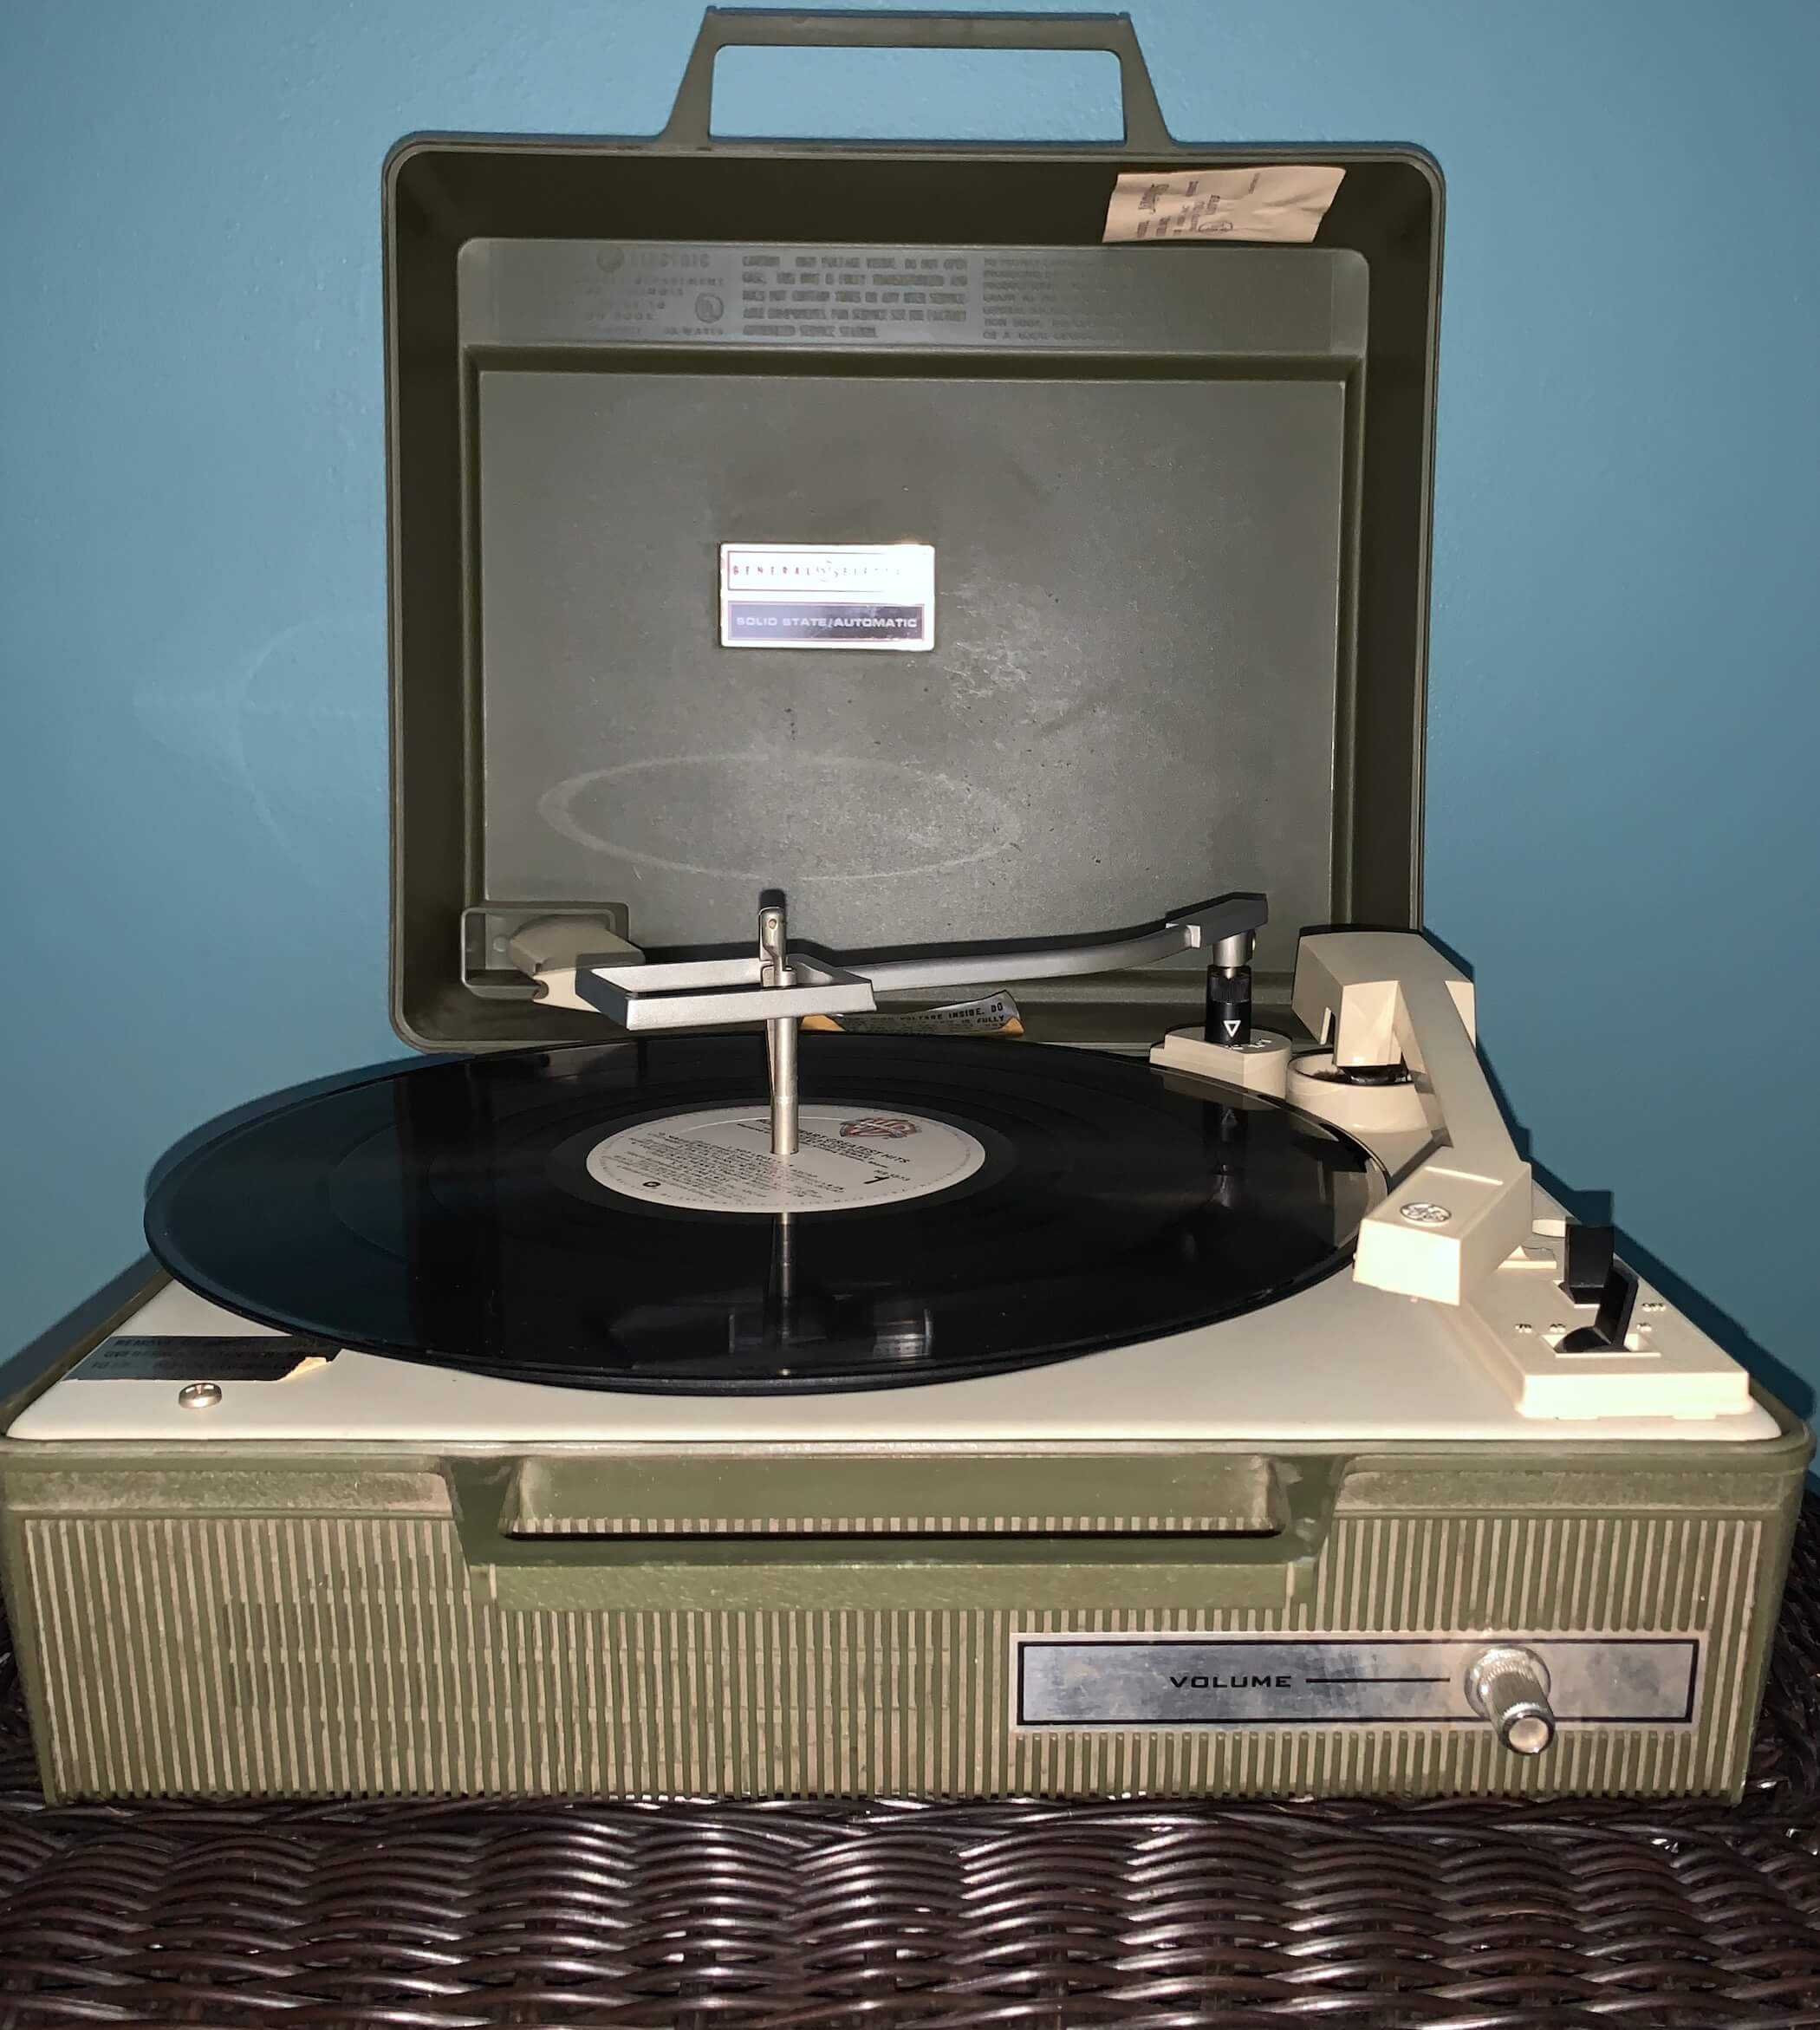 General Electric record player circa 1960s